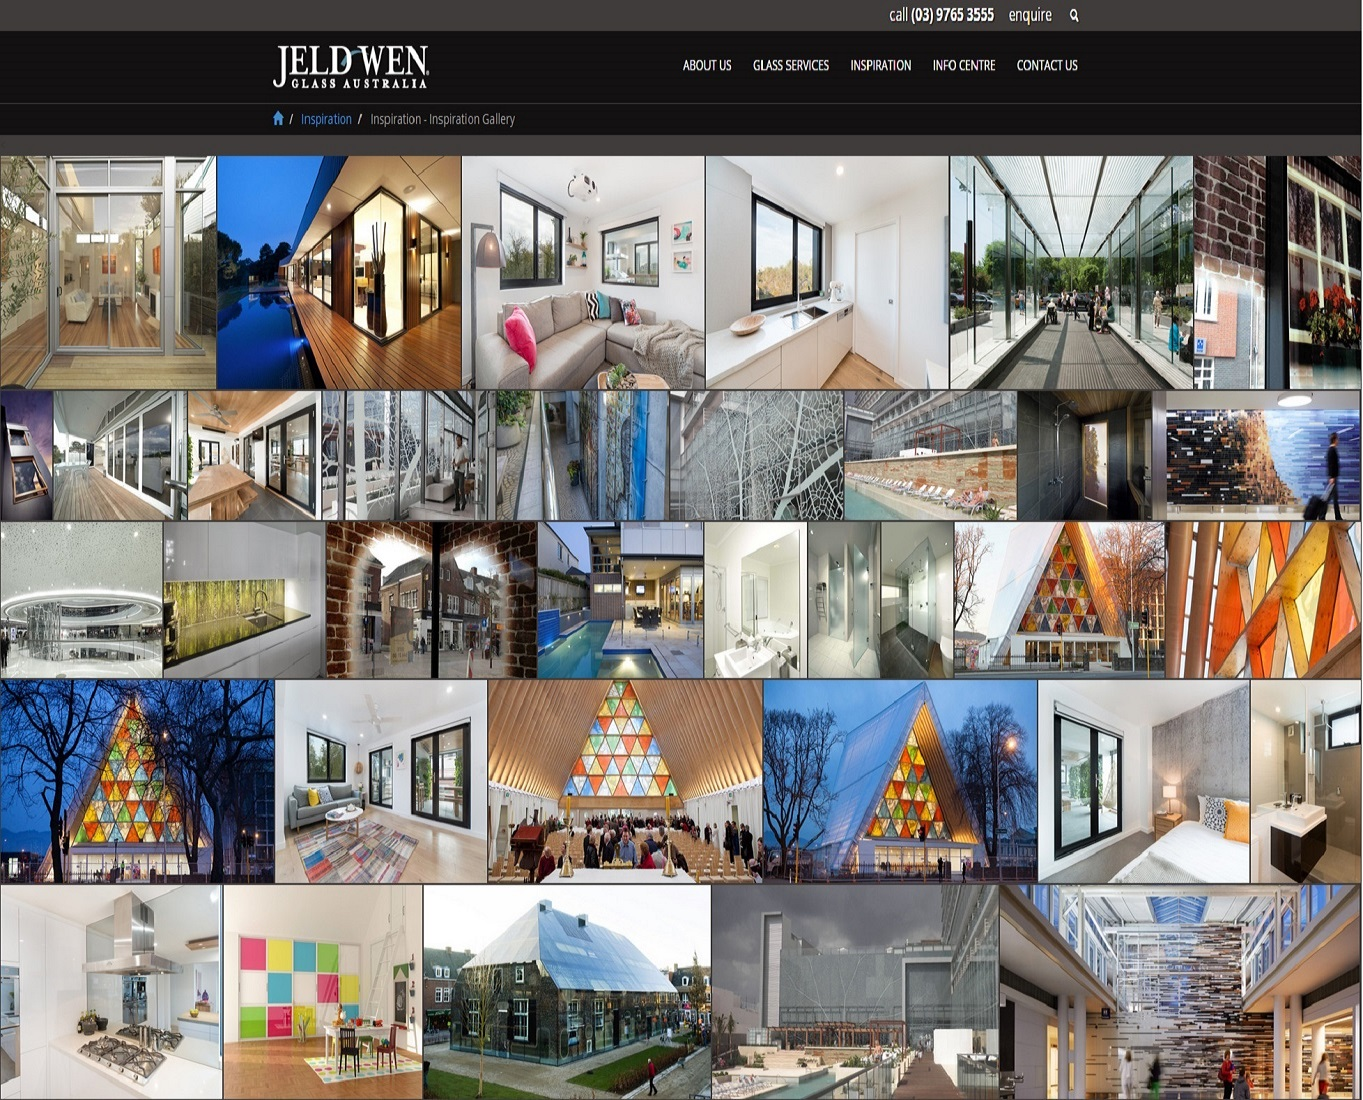 Check out New JELD-WEN Glass Website - Inspiration Gallery to know how our web developers and web design Sydney team to help your online marketing, SEO, SEM, social marketing and web development.